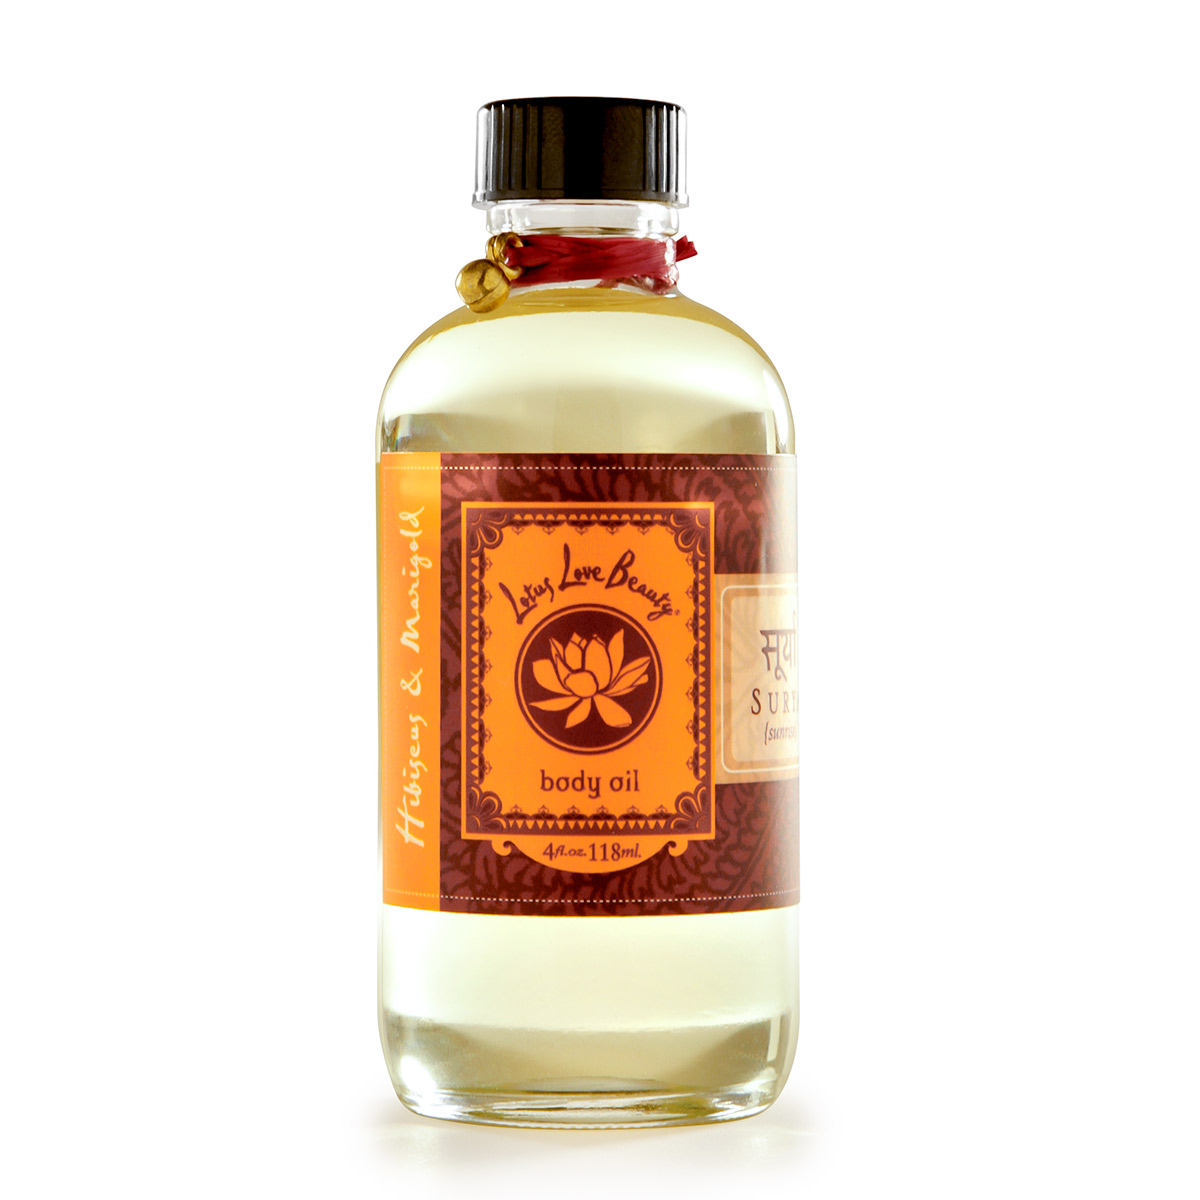 Lotus Love Beauty Bath And Body Oil Surya Hibiscus Marigold